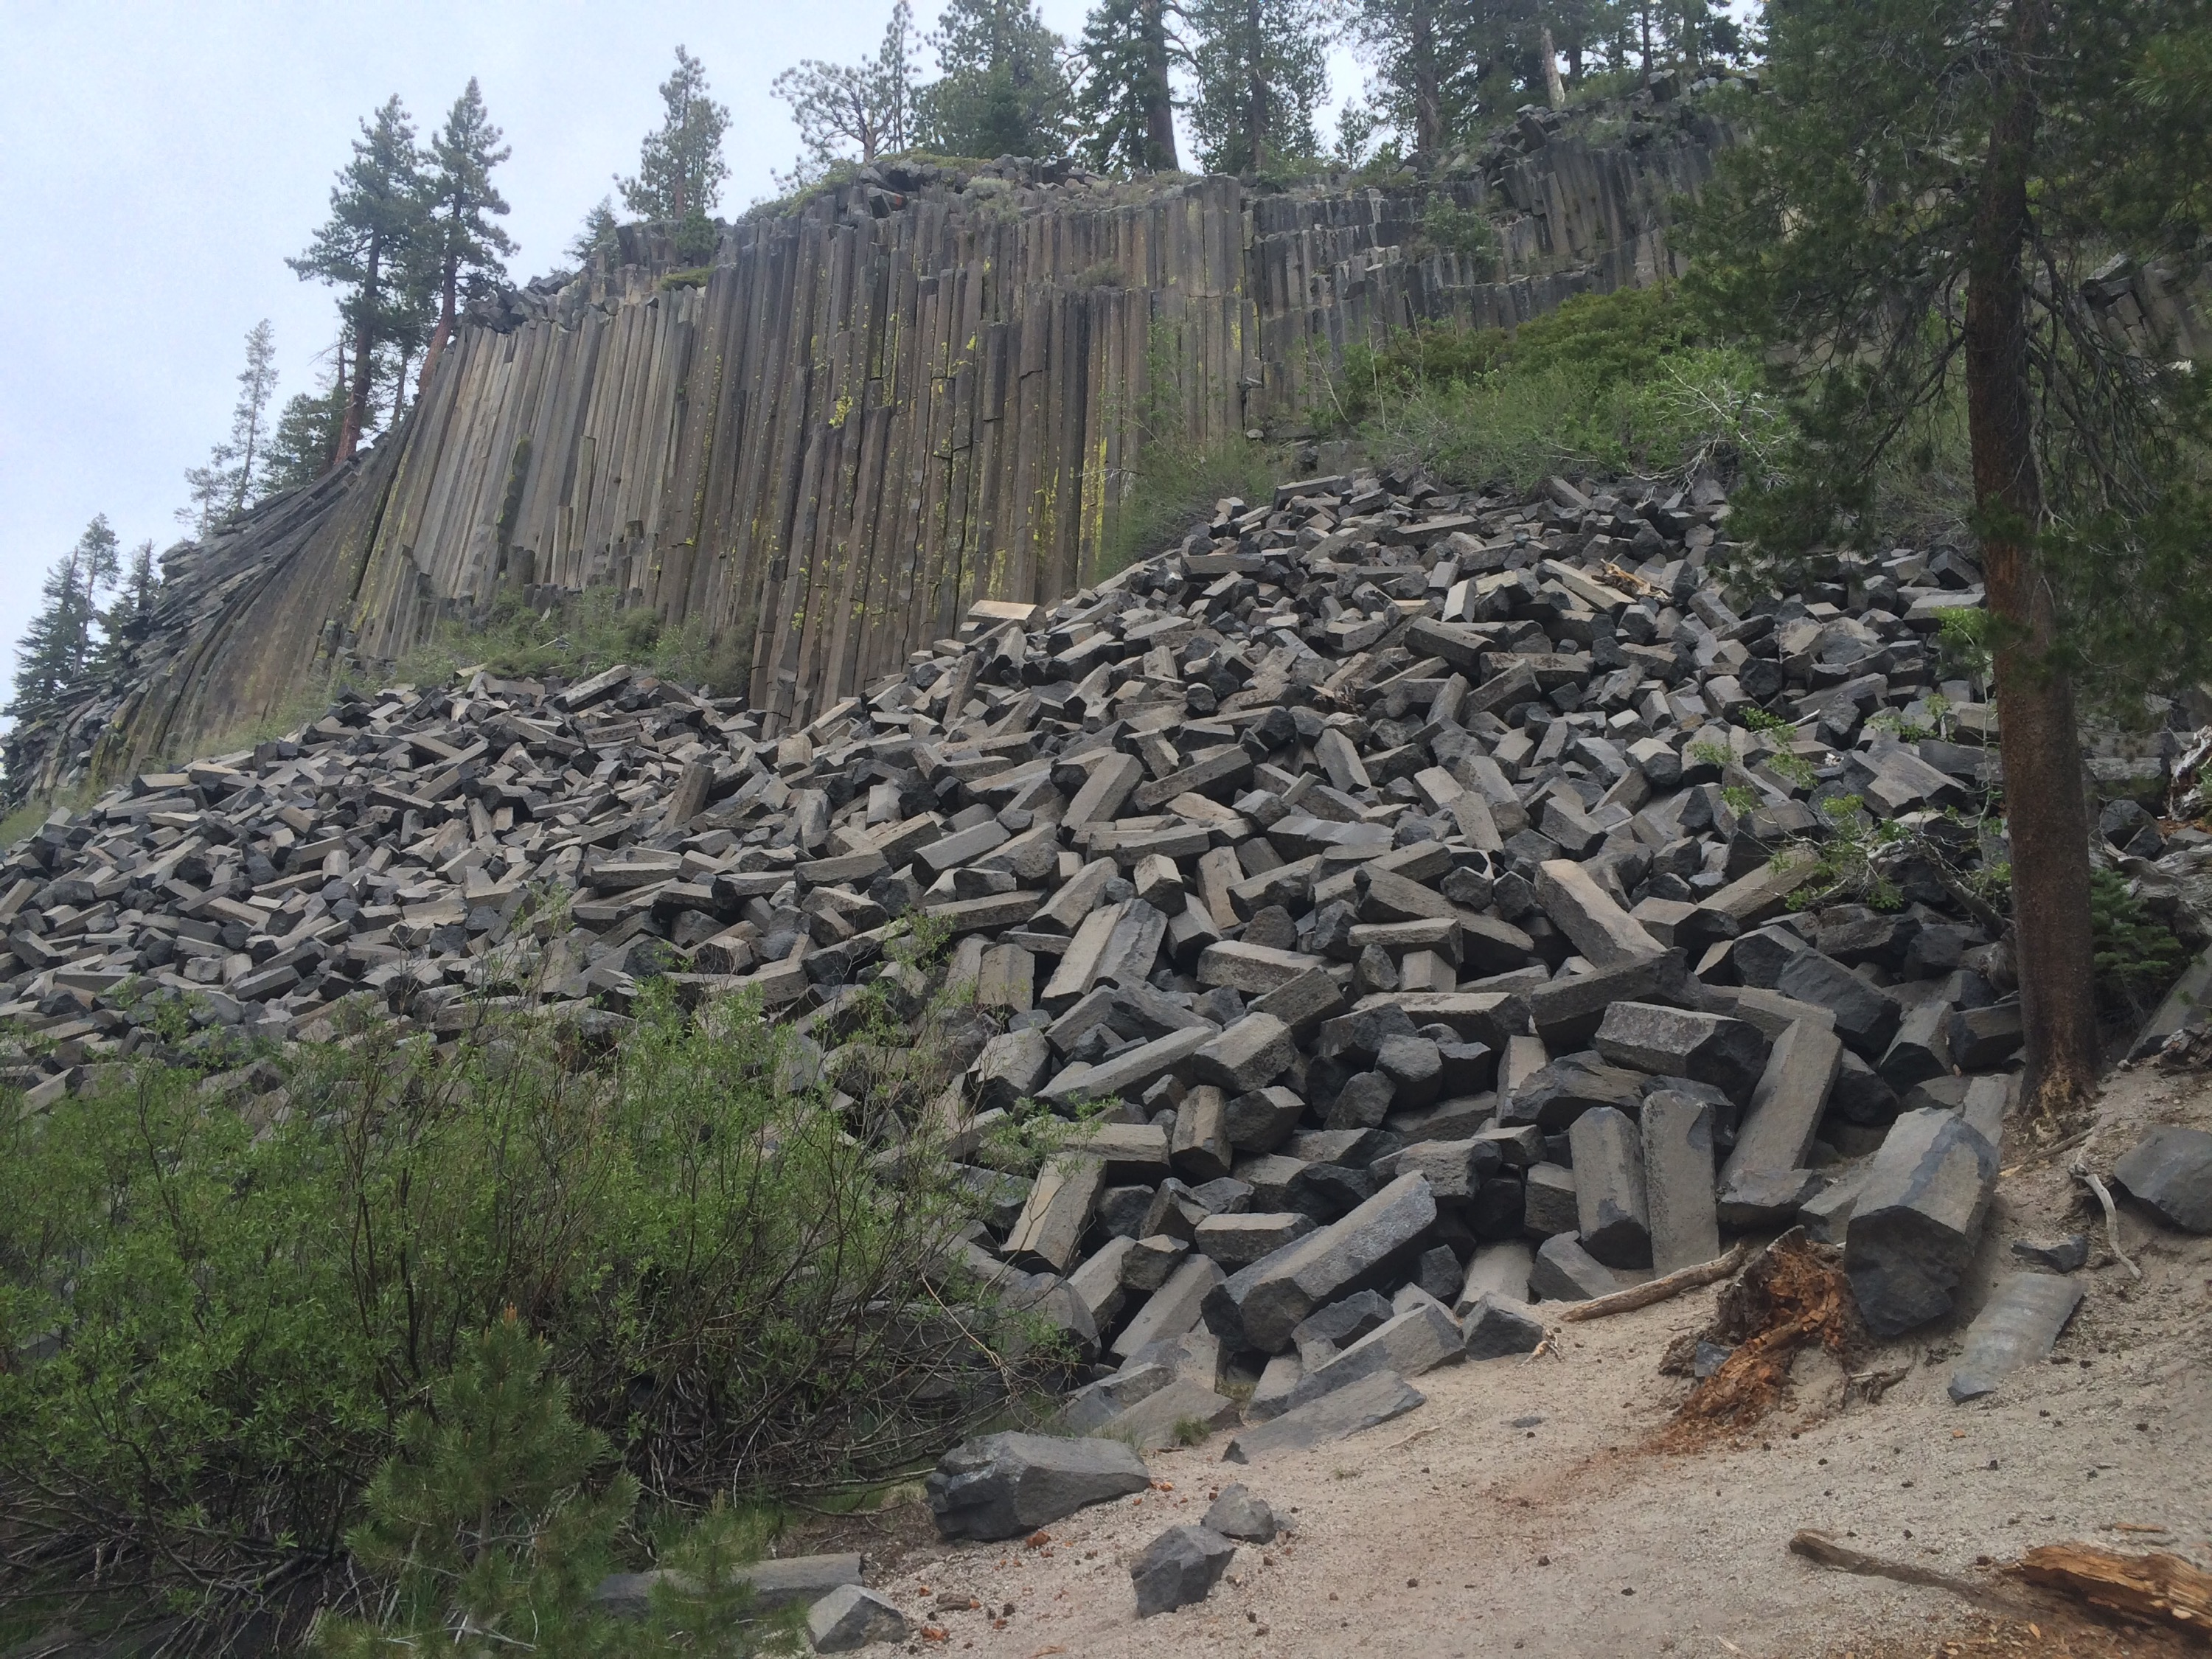 The Devil's Postpile outside of Red's Meadow